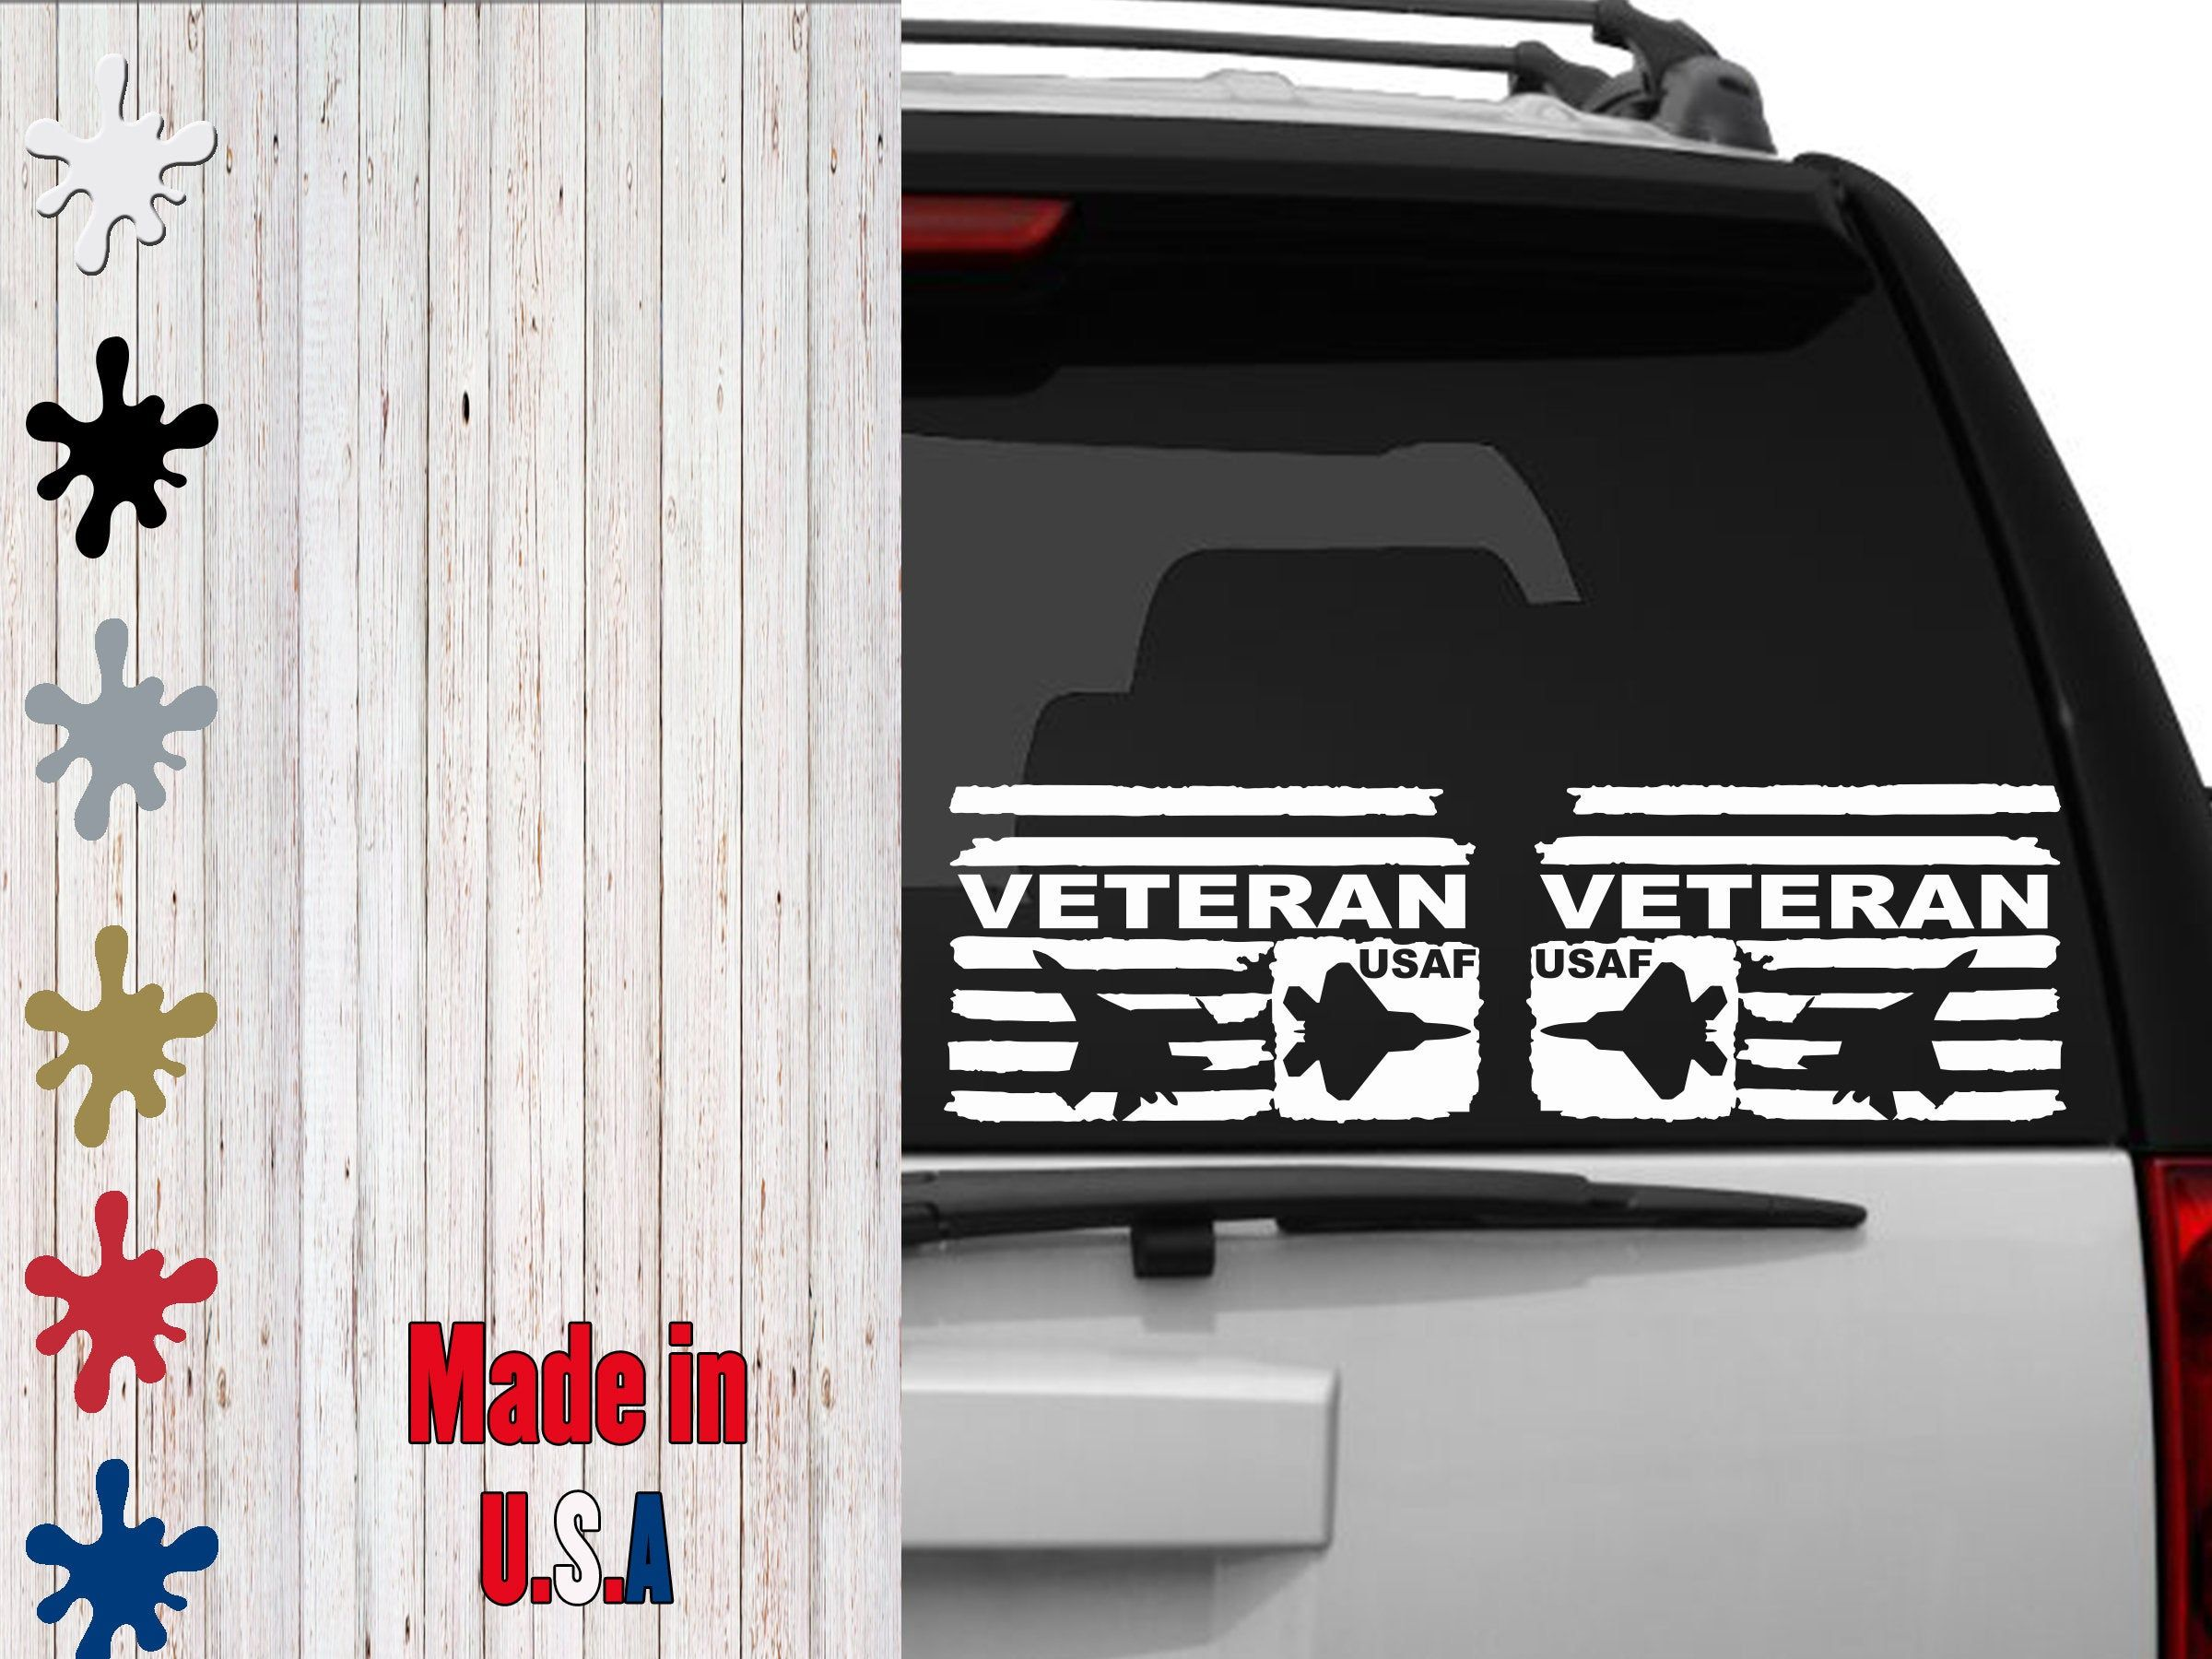 Air Force Veteran Distressed Subdued Flags Car Decal